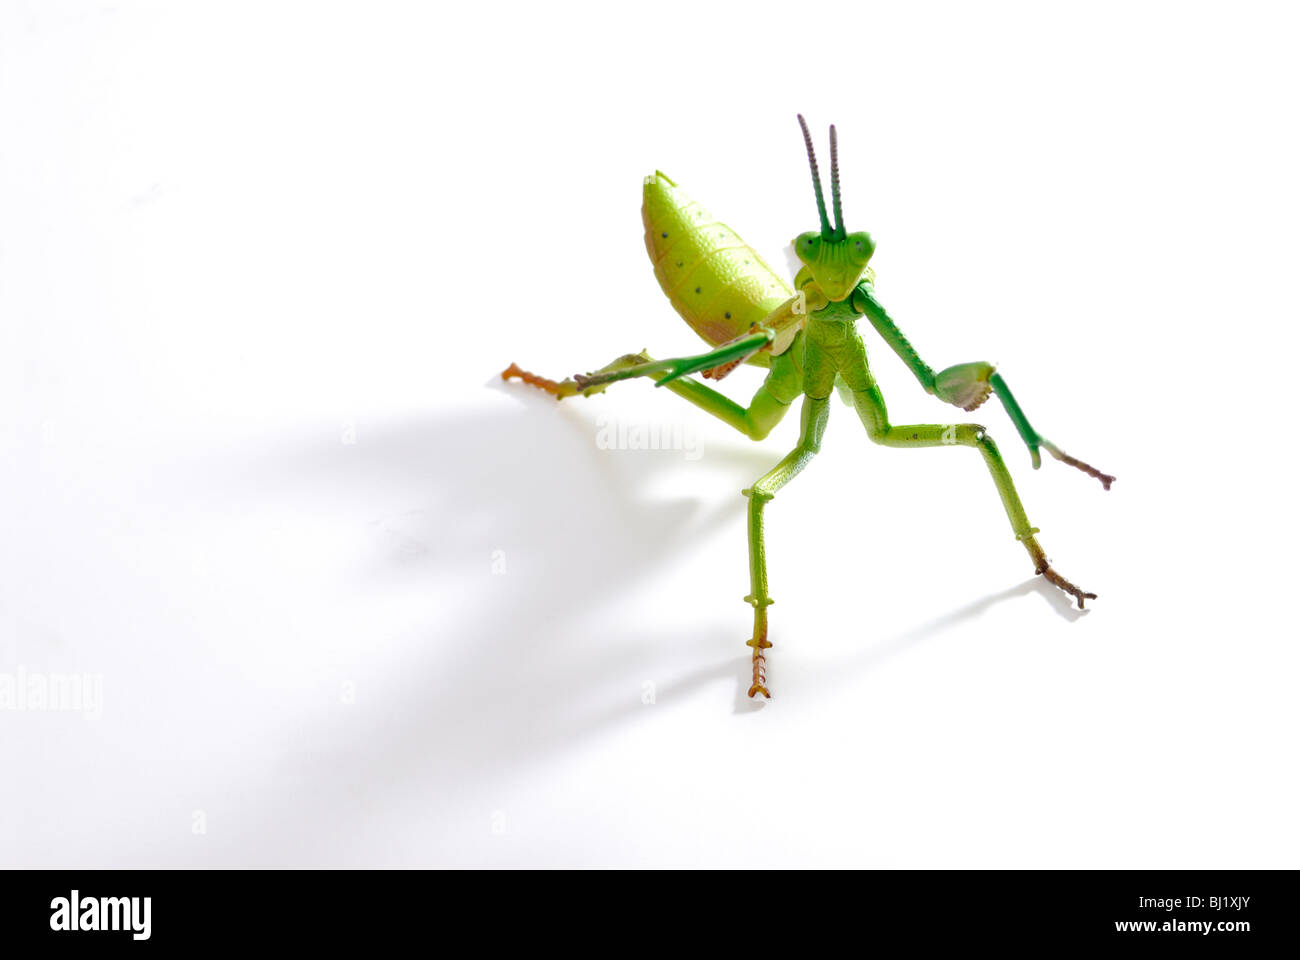 Toy locust, hedge funds - Stock Image